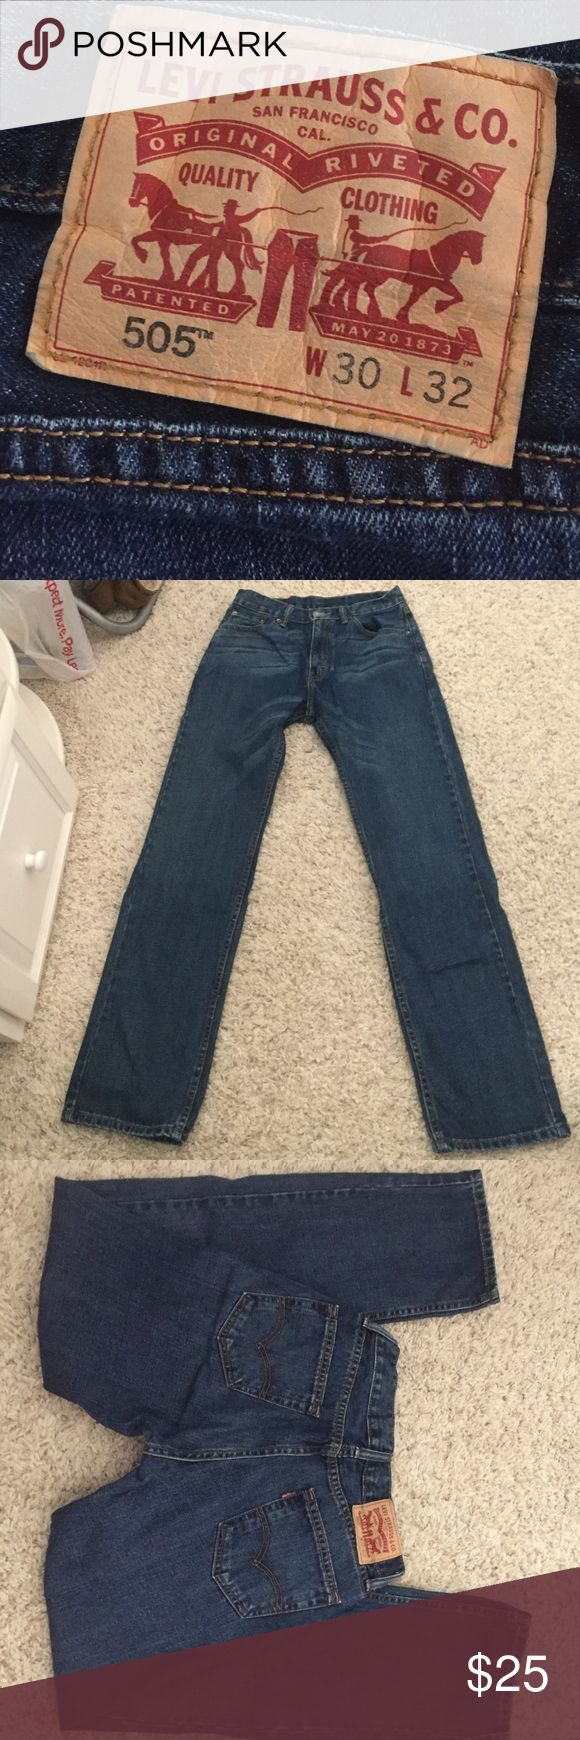 Men's Levi's W30 L32 NWOT men's Levi jeans, have never been worn because they don't fit me. Perfect condition! Levi's Jeans Straight